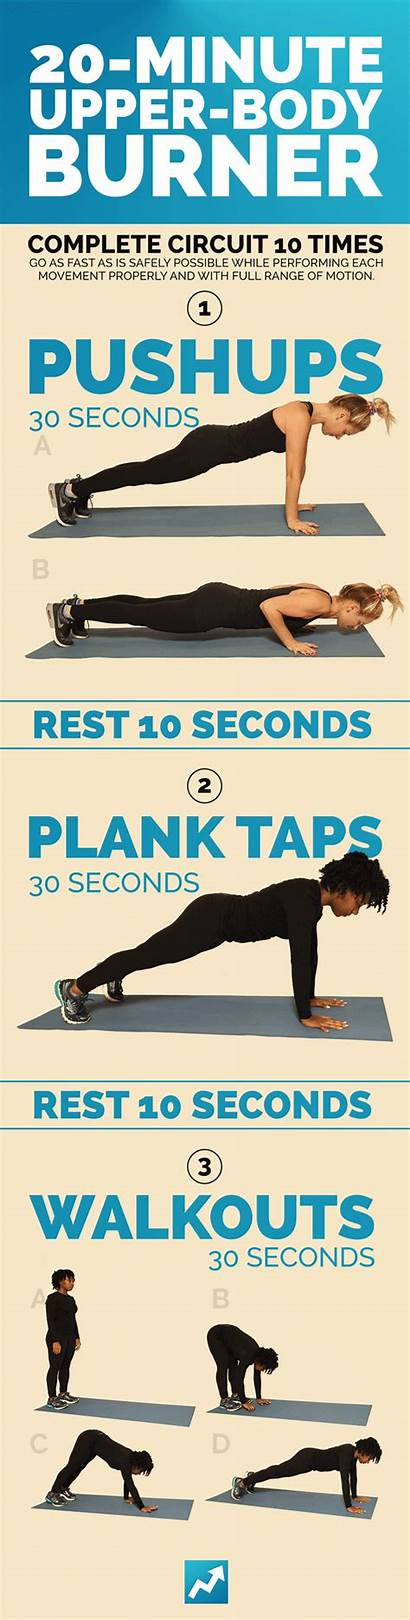 Workouts Workout Buzzfeed Total Upper Equipment Gym